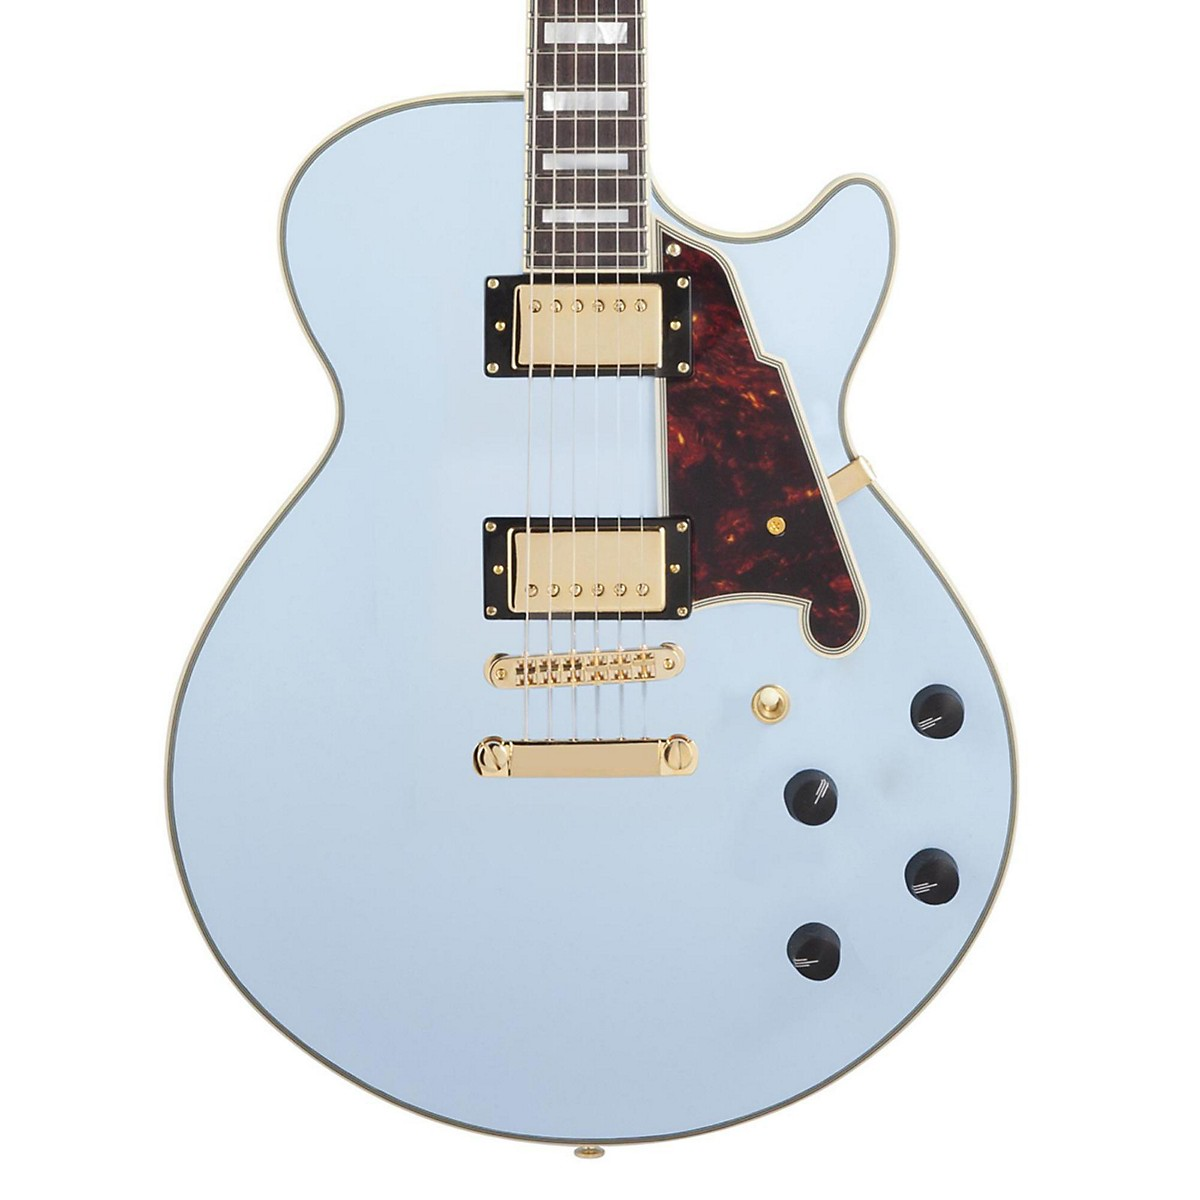 D'Angelico D'Angelico EX-SS Non-F Hole Deluxe Edition Hollowbody Electric Guitar